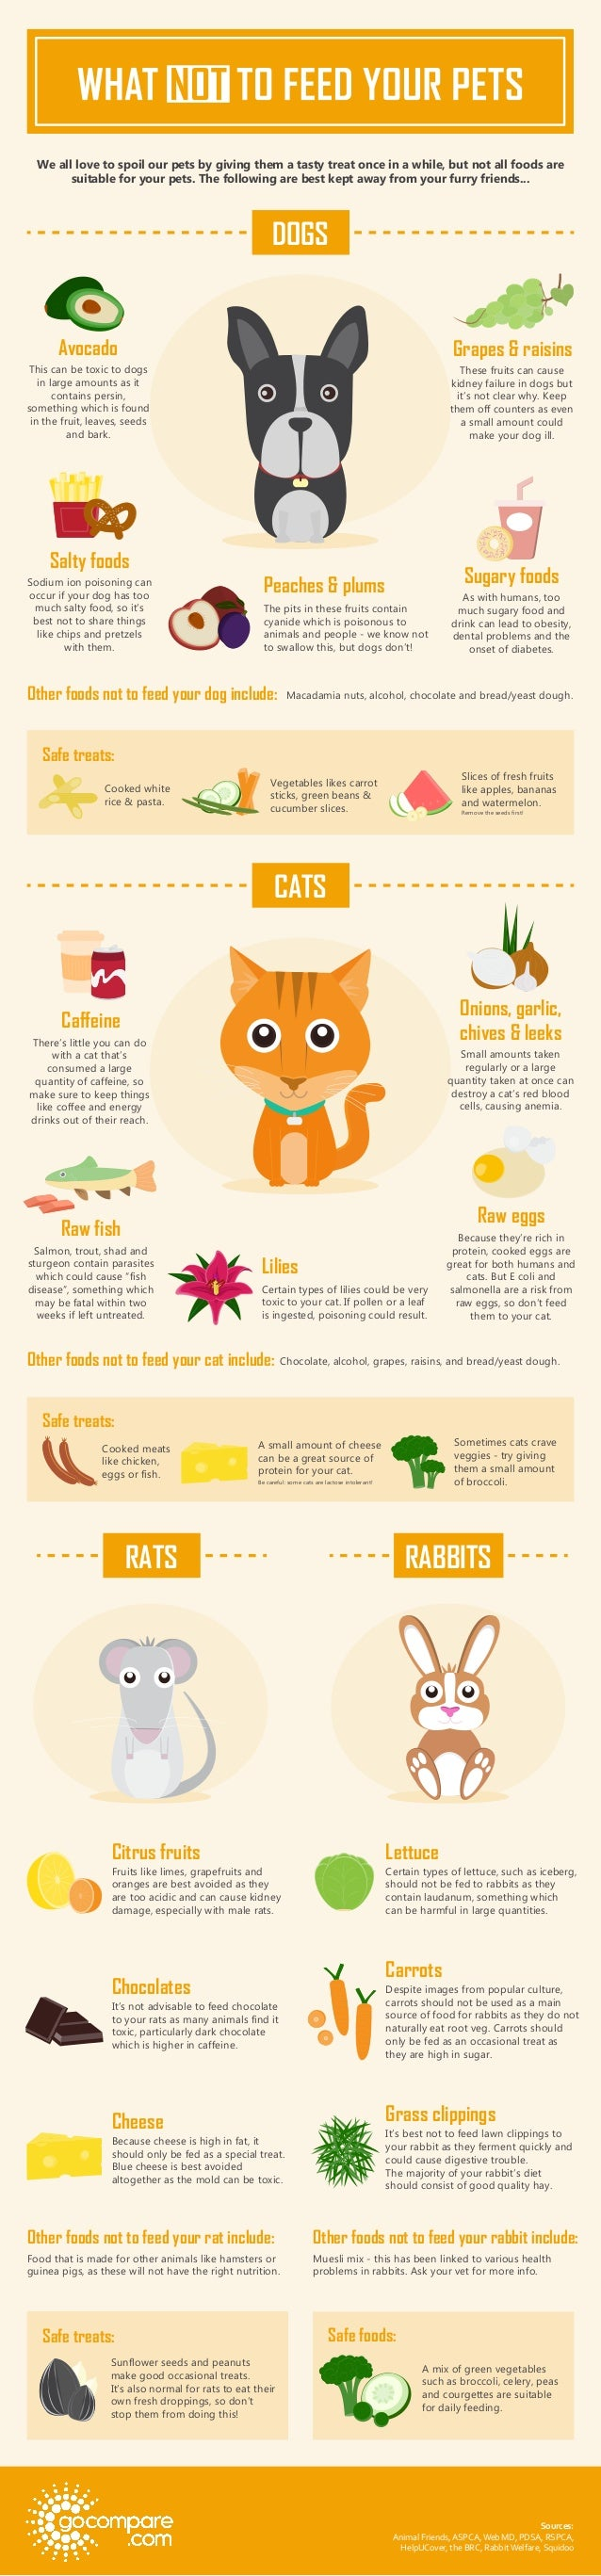 We all love to spoil our pets by giving them a tasty treat once in a while, but not all foods are suitable for your pets. ...